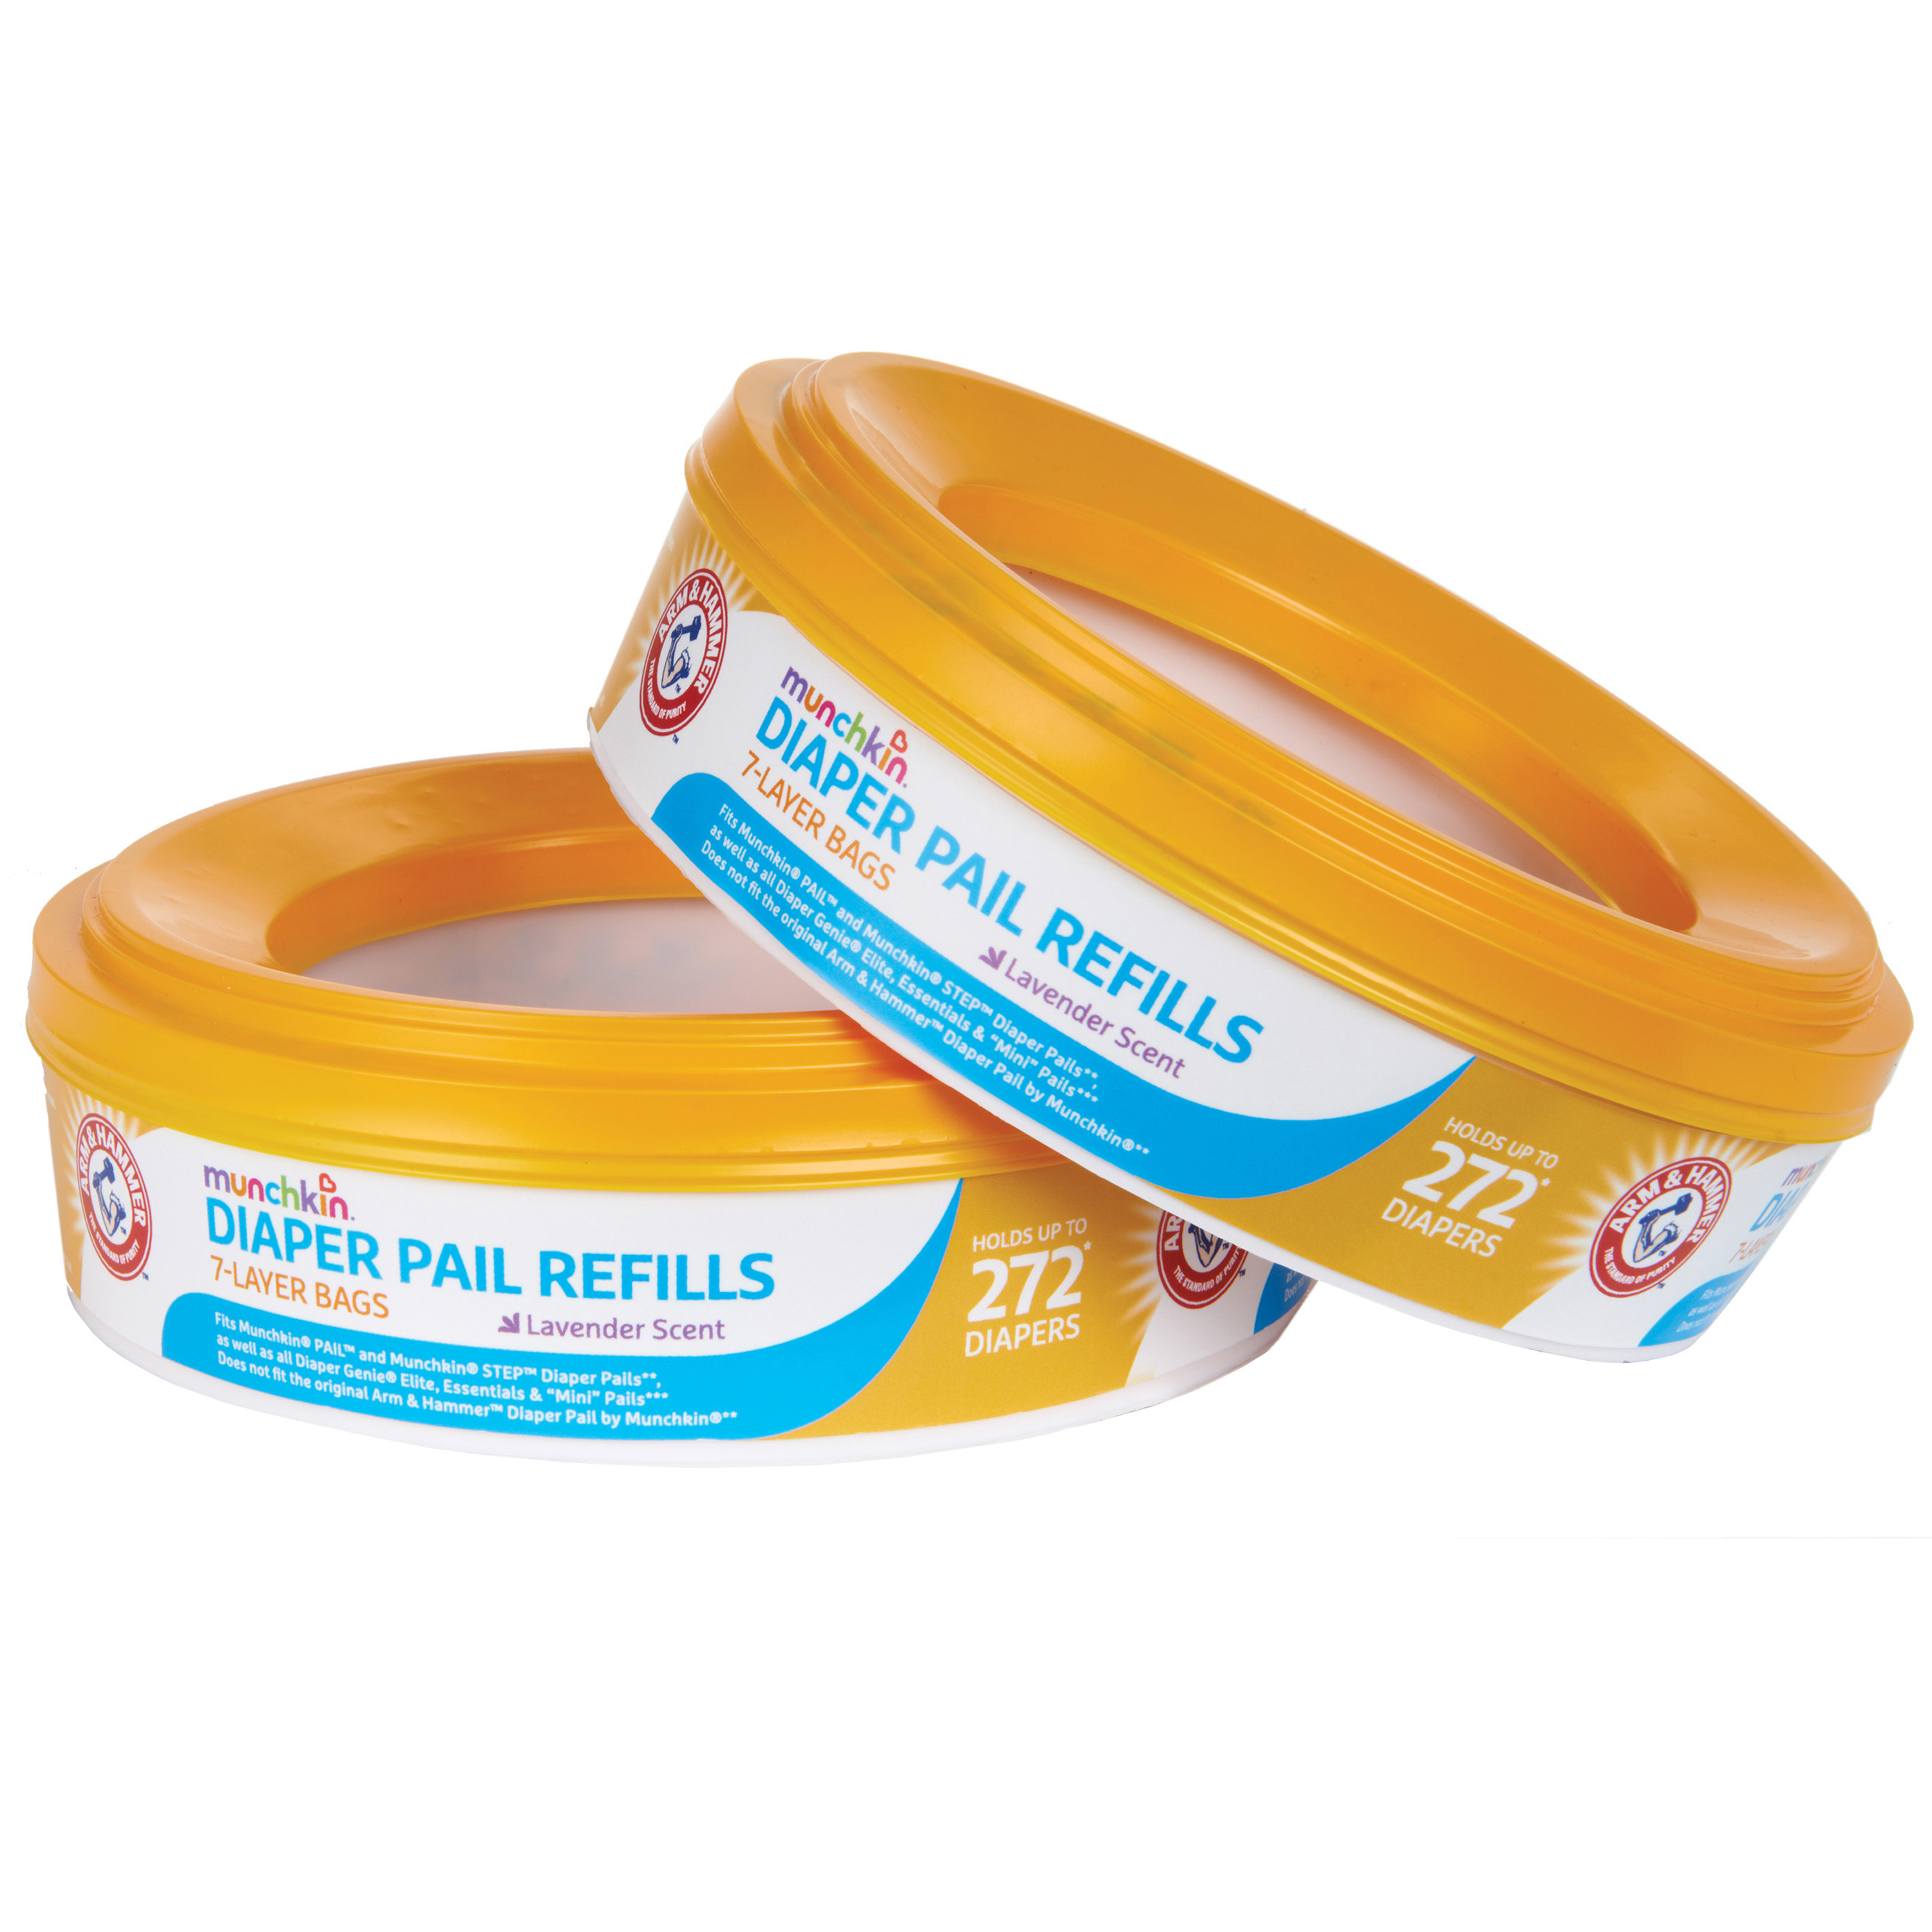 Munchkin Arm and Hammer Diaper Pail Refill Rings, 544 Count, 2 Pack